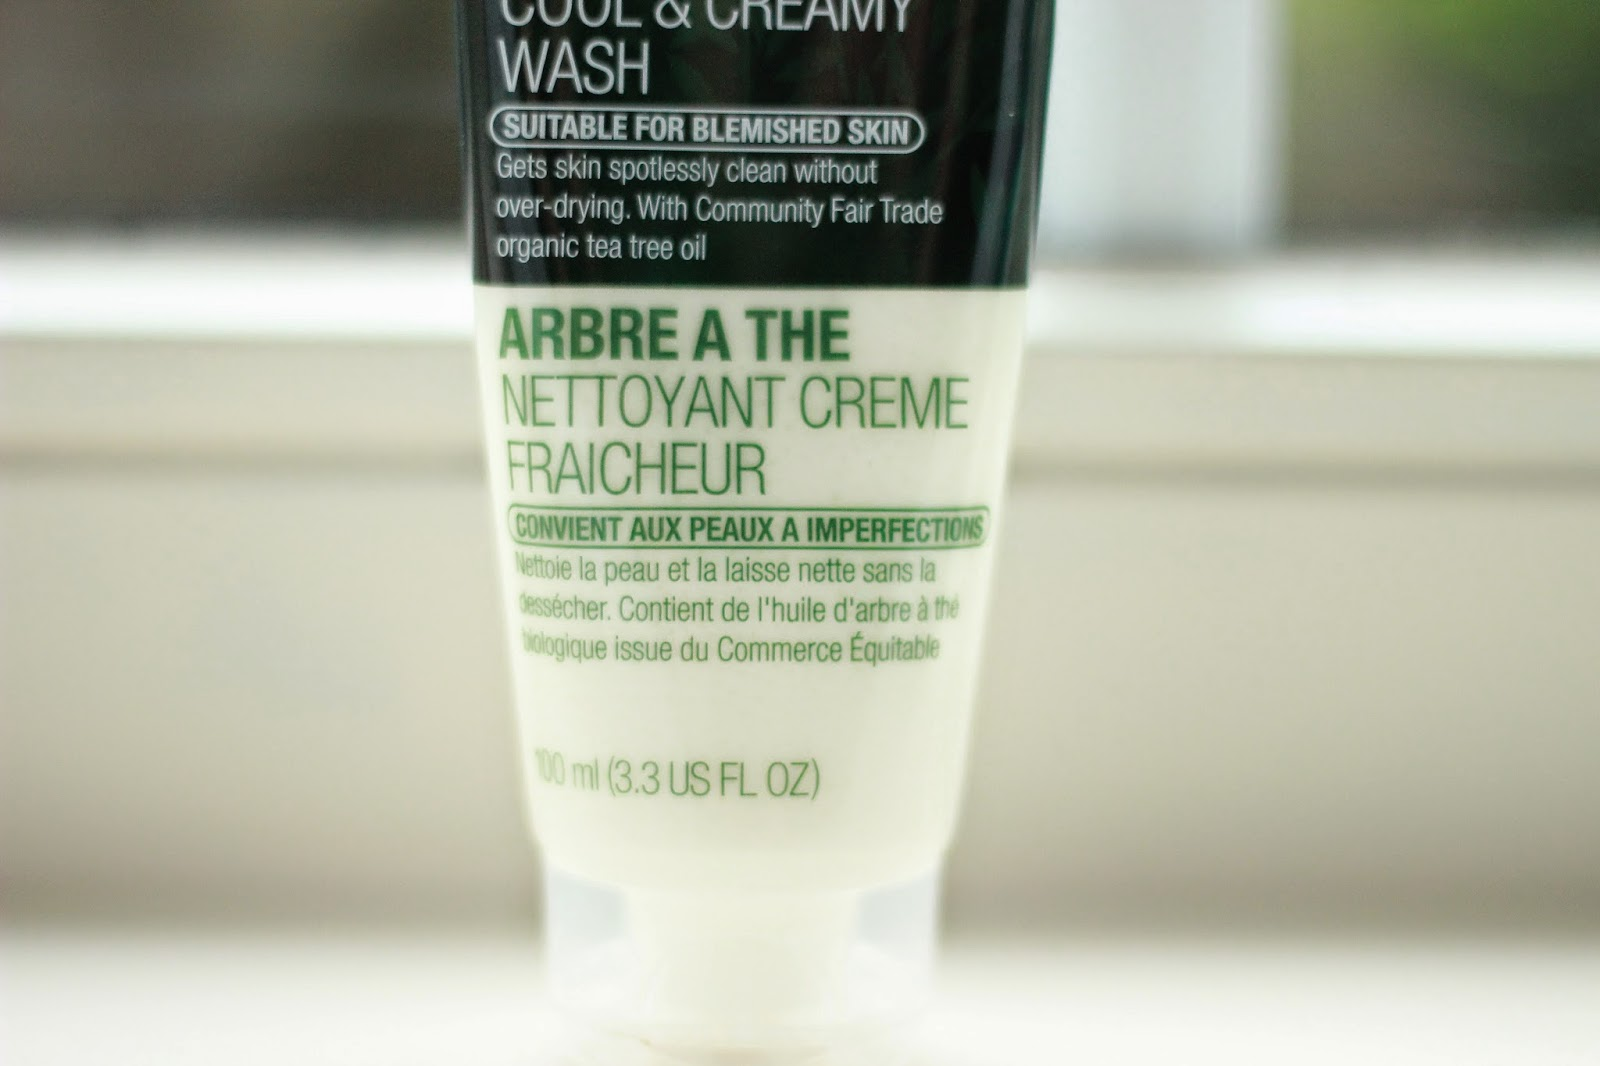 review ervaring the body shop tea tree cool & creamy wash